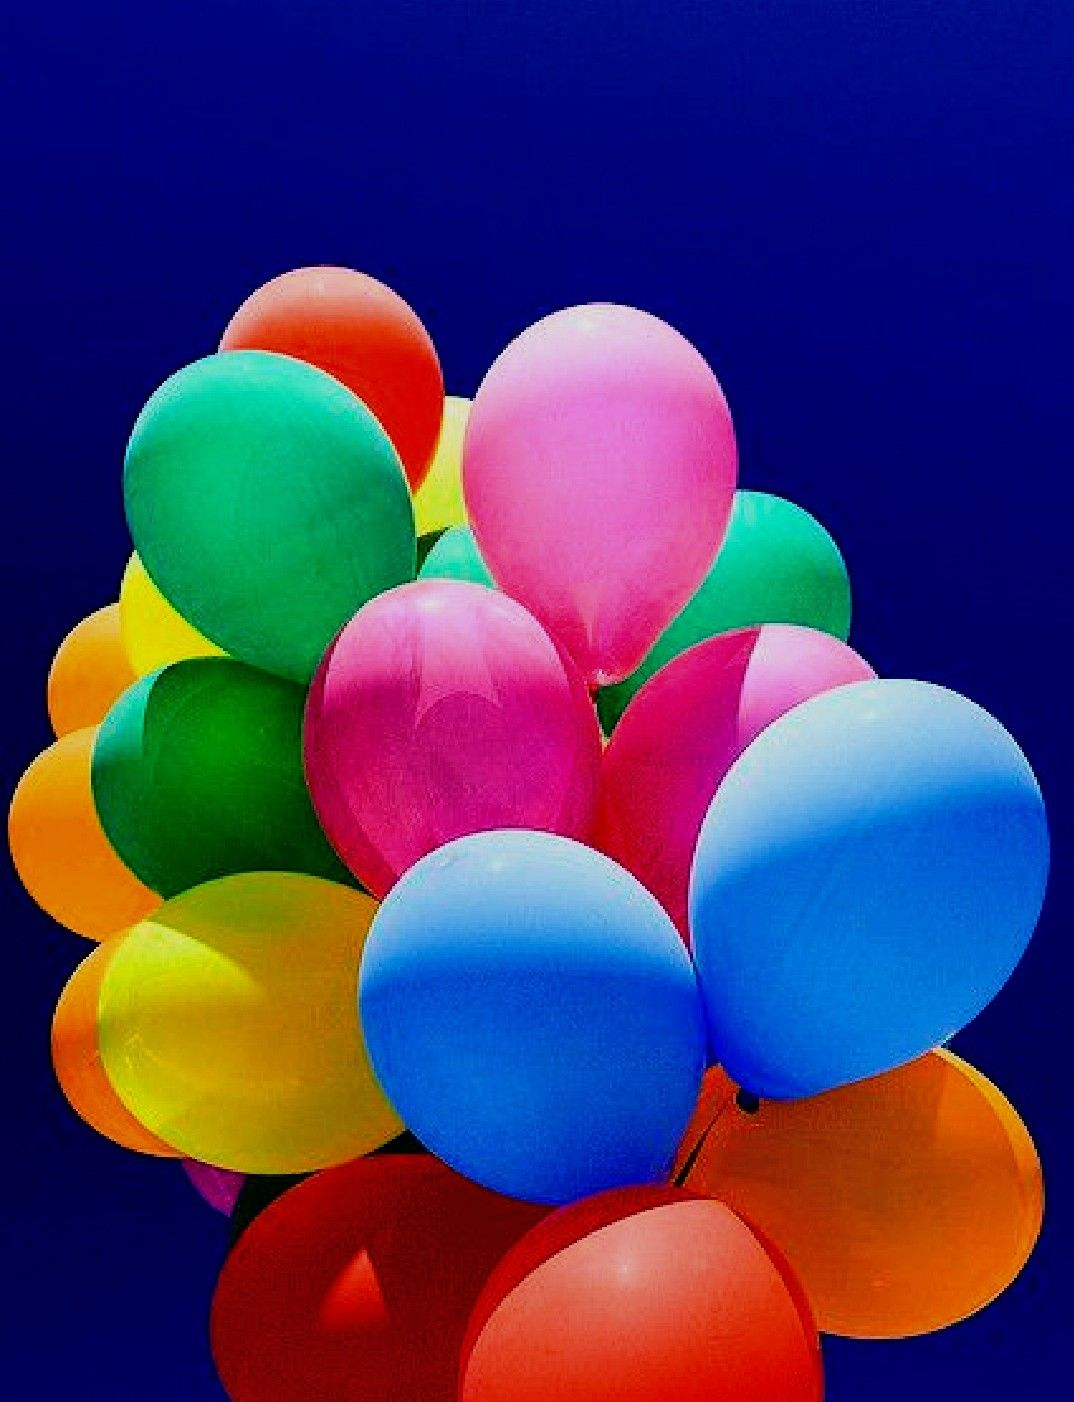 Pin by Emily Kapp on Photography Pretty balloons